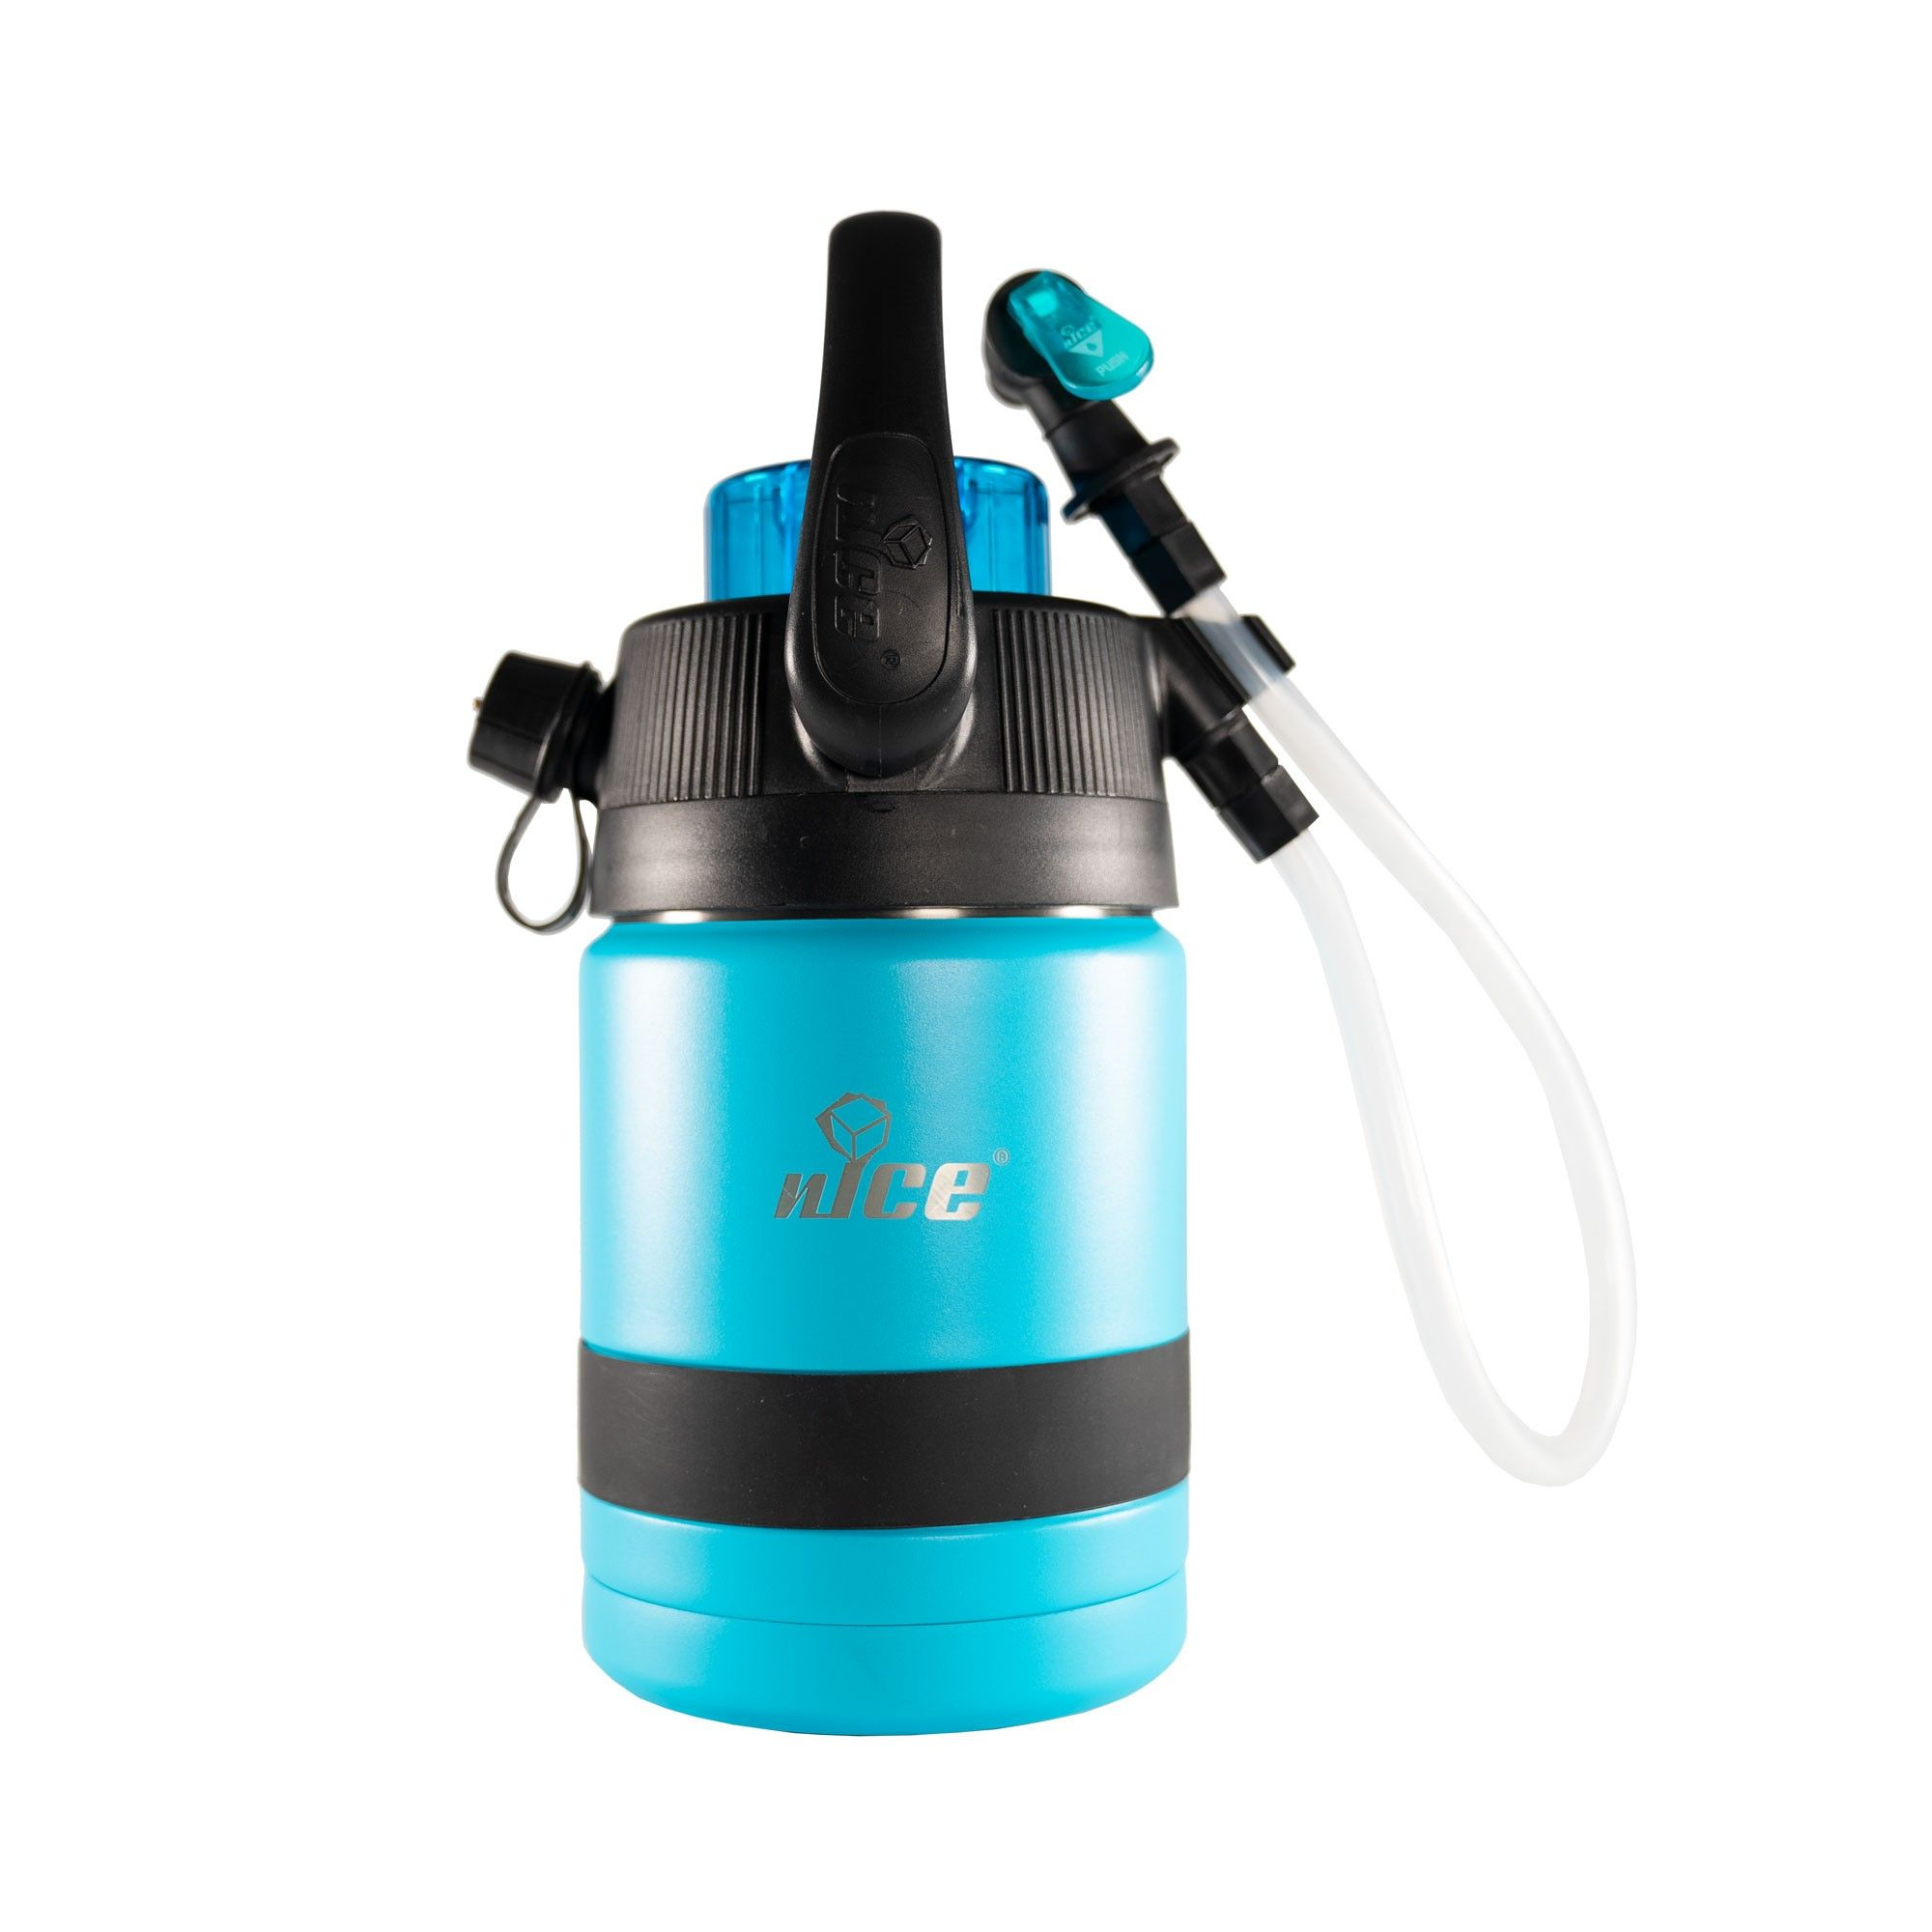 Nice Coolers Pump2pour 1 2 Gallon Insulated Jug With Hose And Spout Miami Blue Gallon Spout Jugs